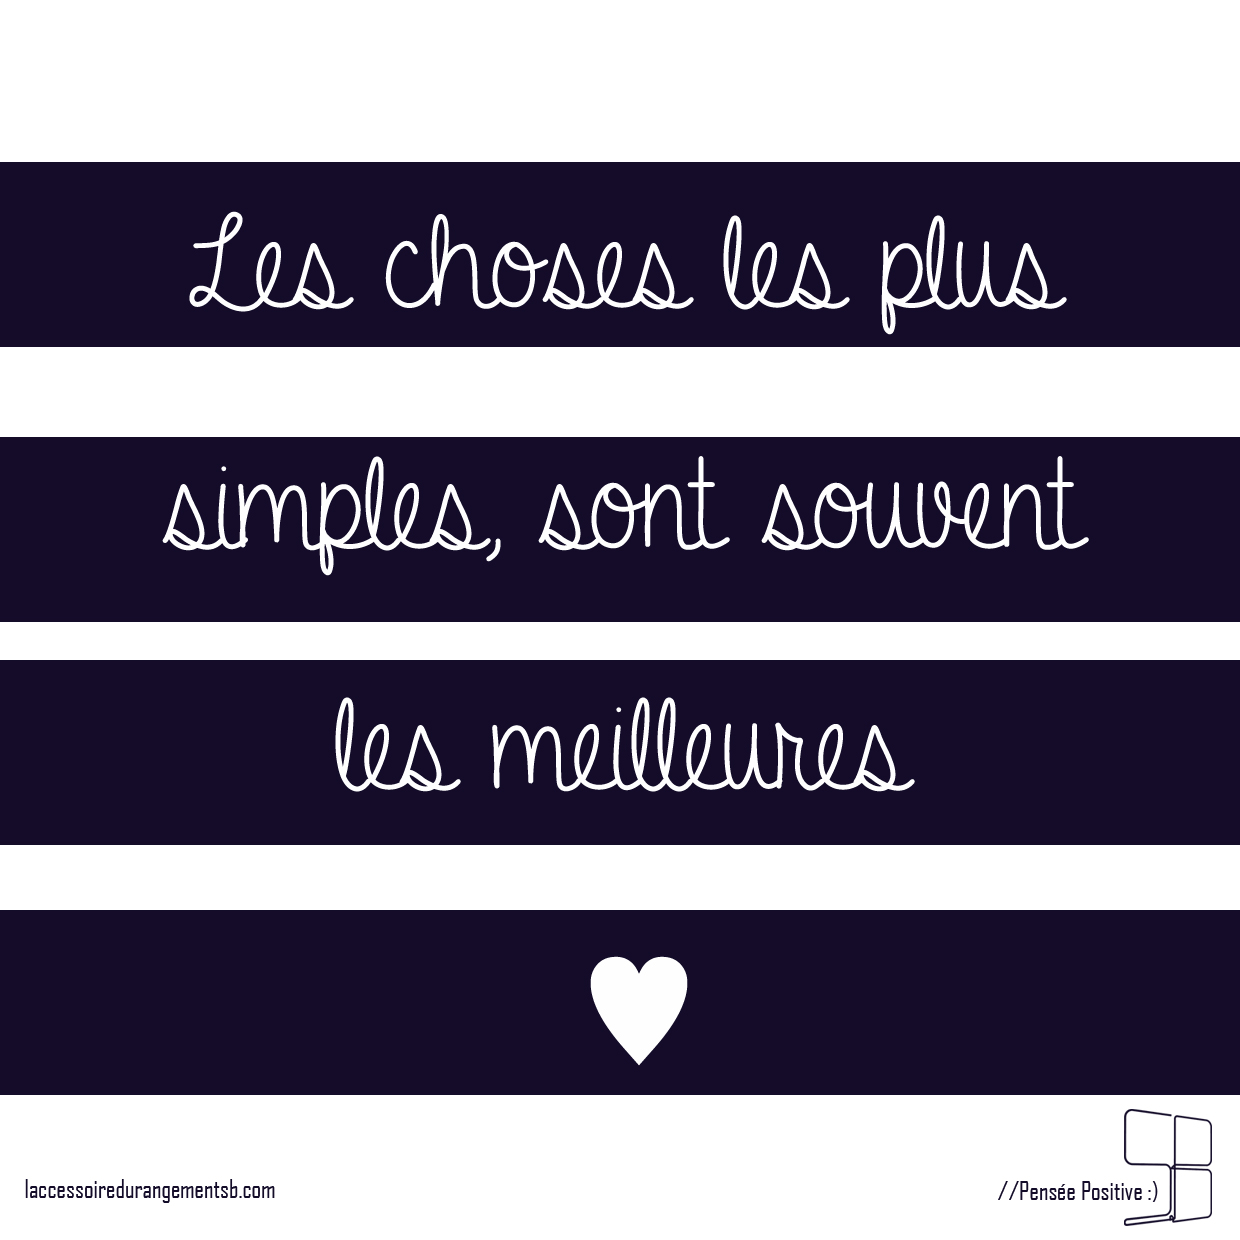 citation_les-choses-les-plus-simples